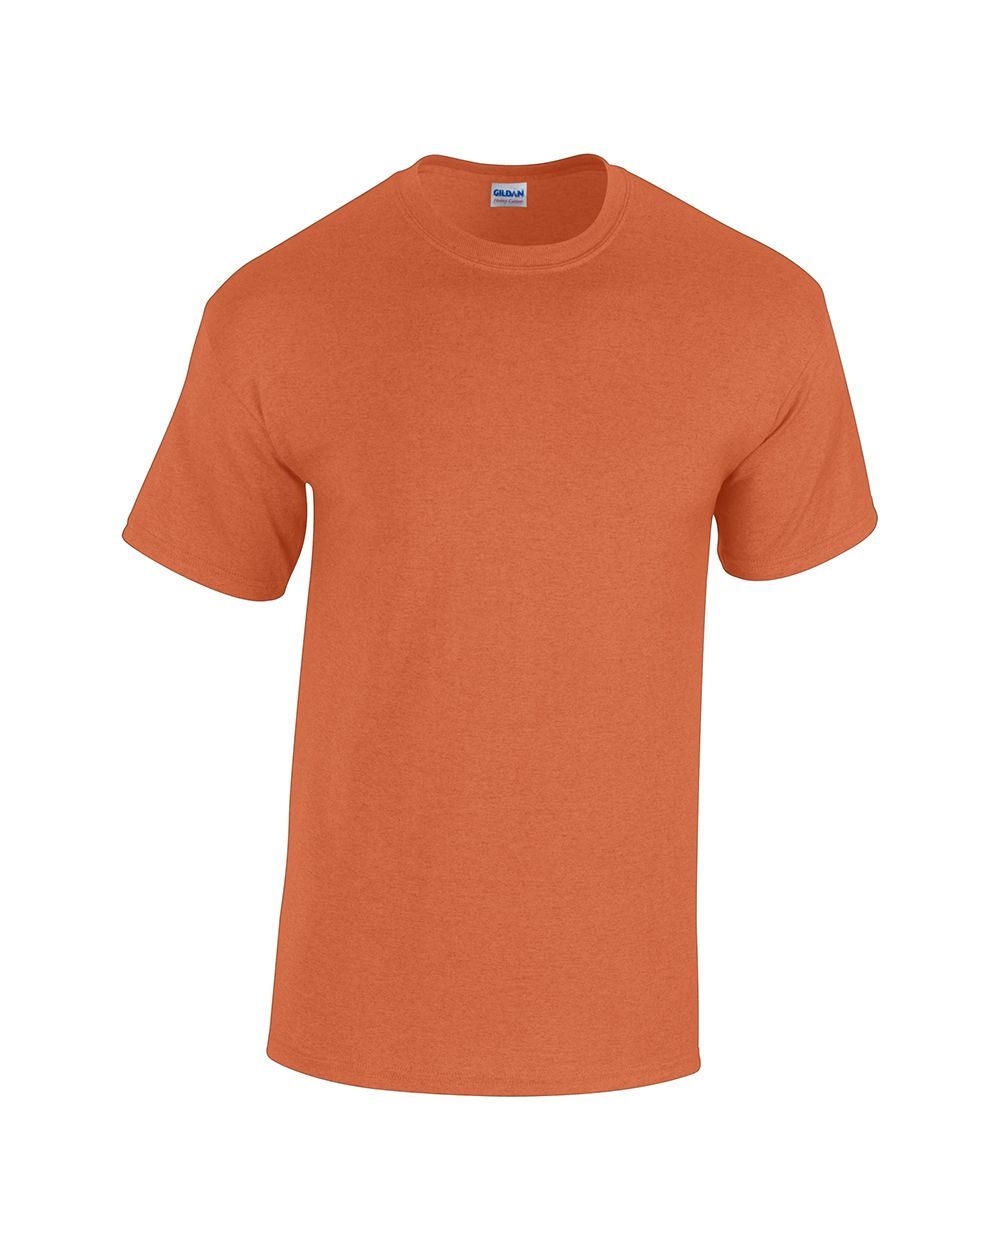 245c636d Buy Men's T Shrit Online and Grab the Best Deals Visit our website to buy men's  t-shirt online and we have a huge stock of dresses that you would find .